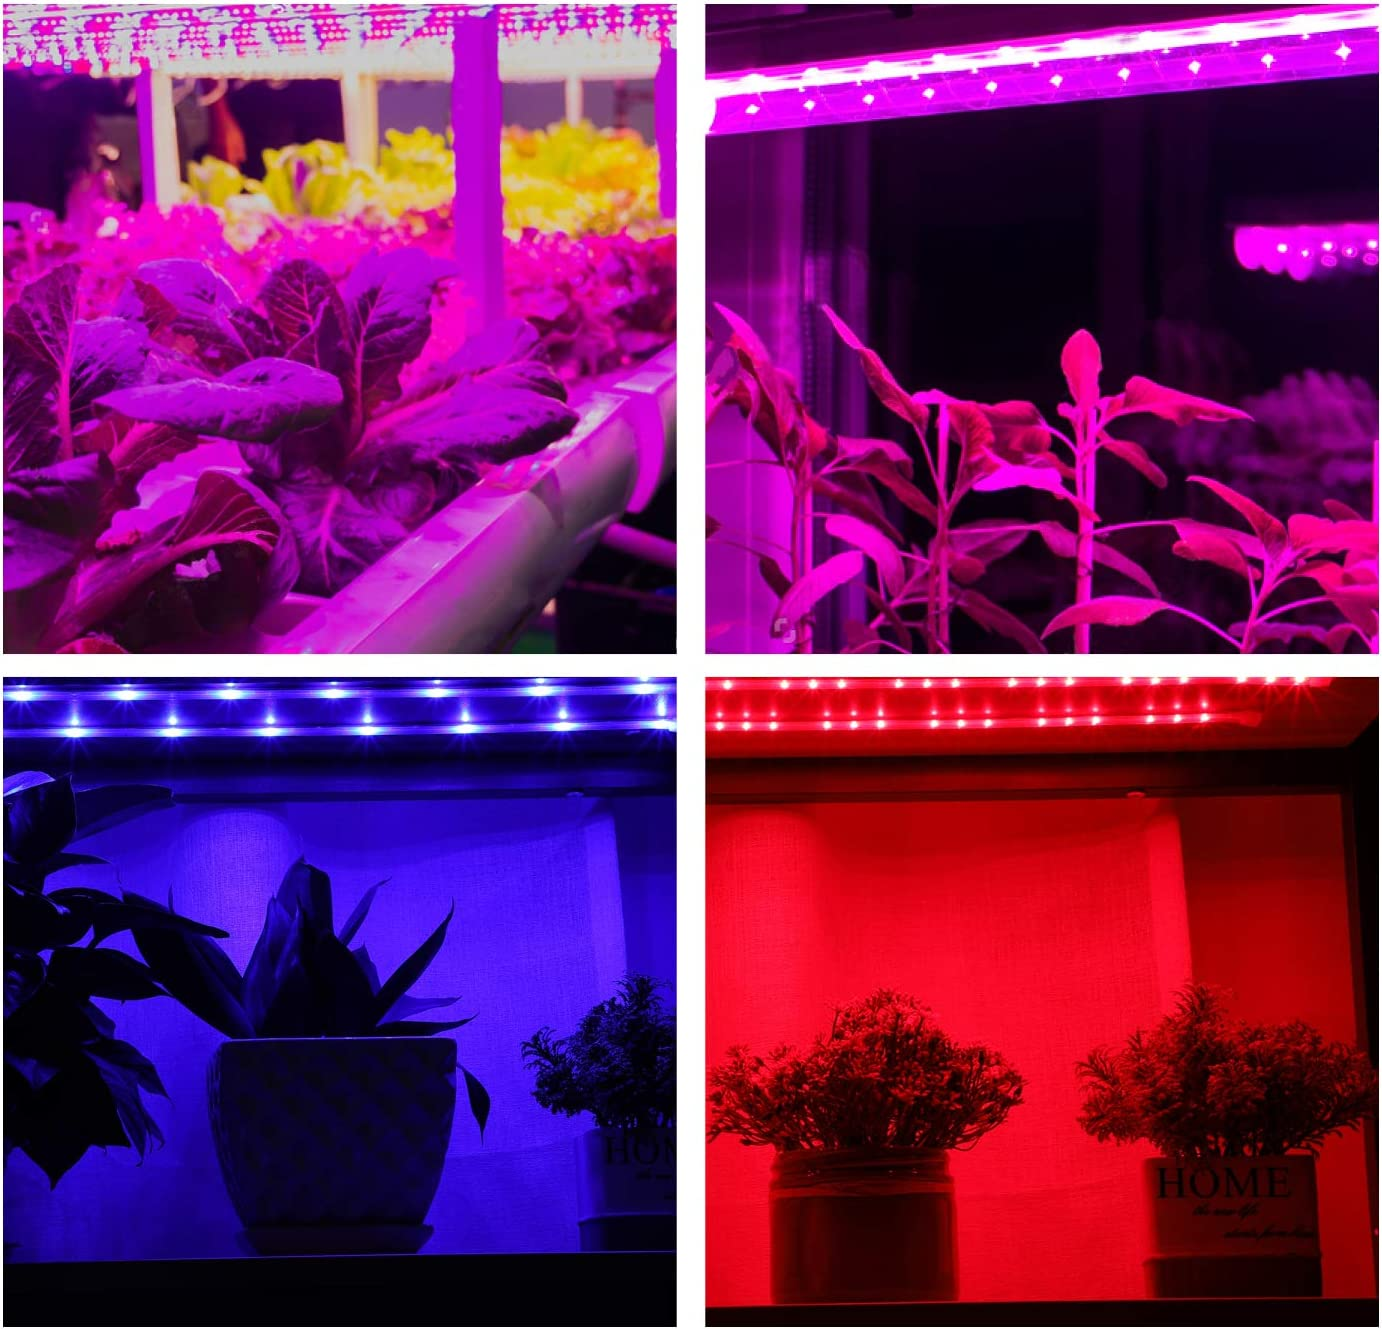 3 Pack Grow Light Strips for Indoor Plants with Timer, OxyLED 15W 6 Ft 108 LED Plant Growing Lamps 5 Dimmable Levels, Adhesive Light Bars Waterproof for Succulents Hydroponics Greenhouse Gardening